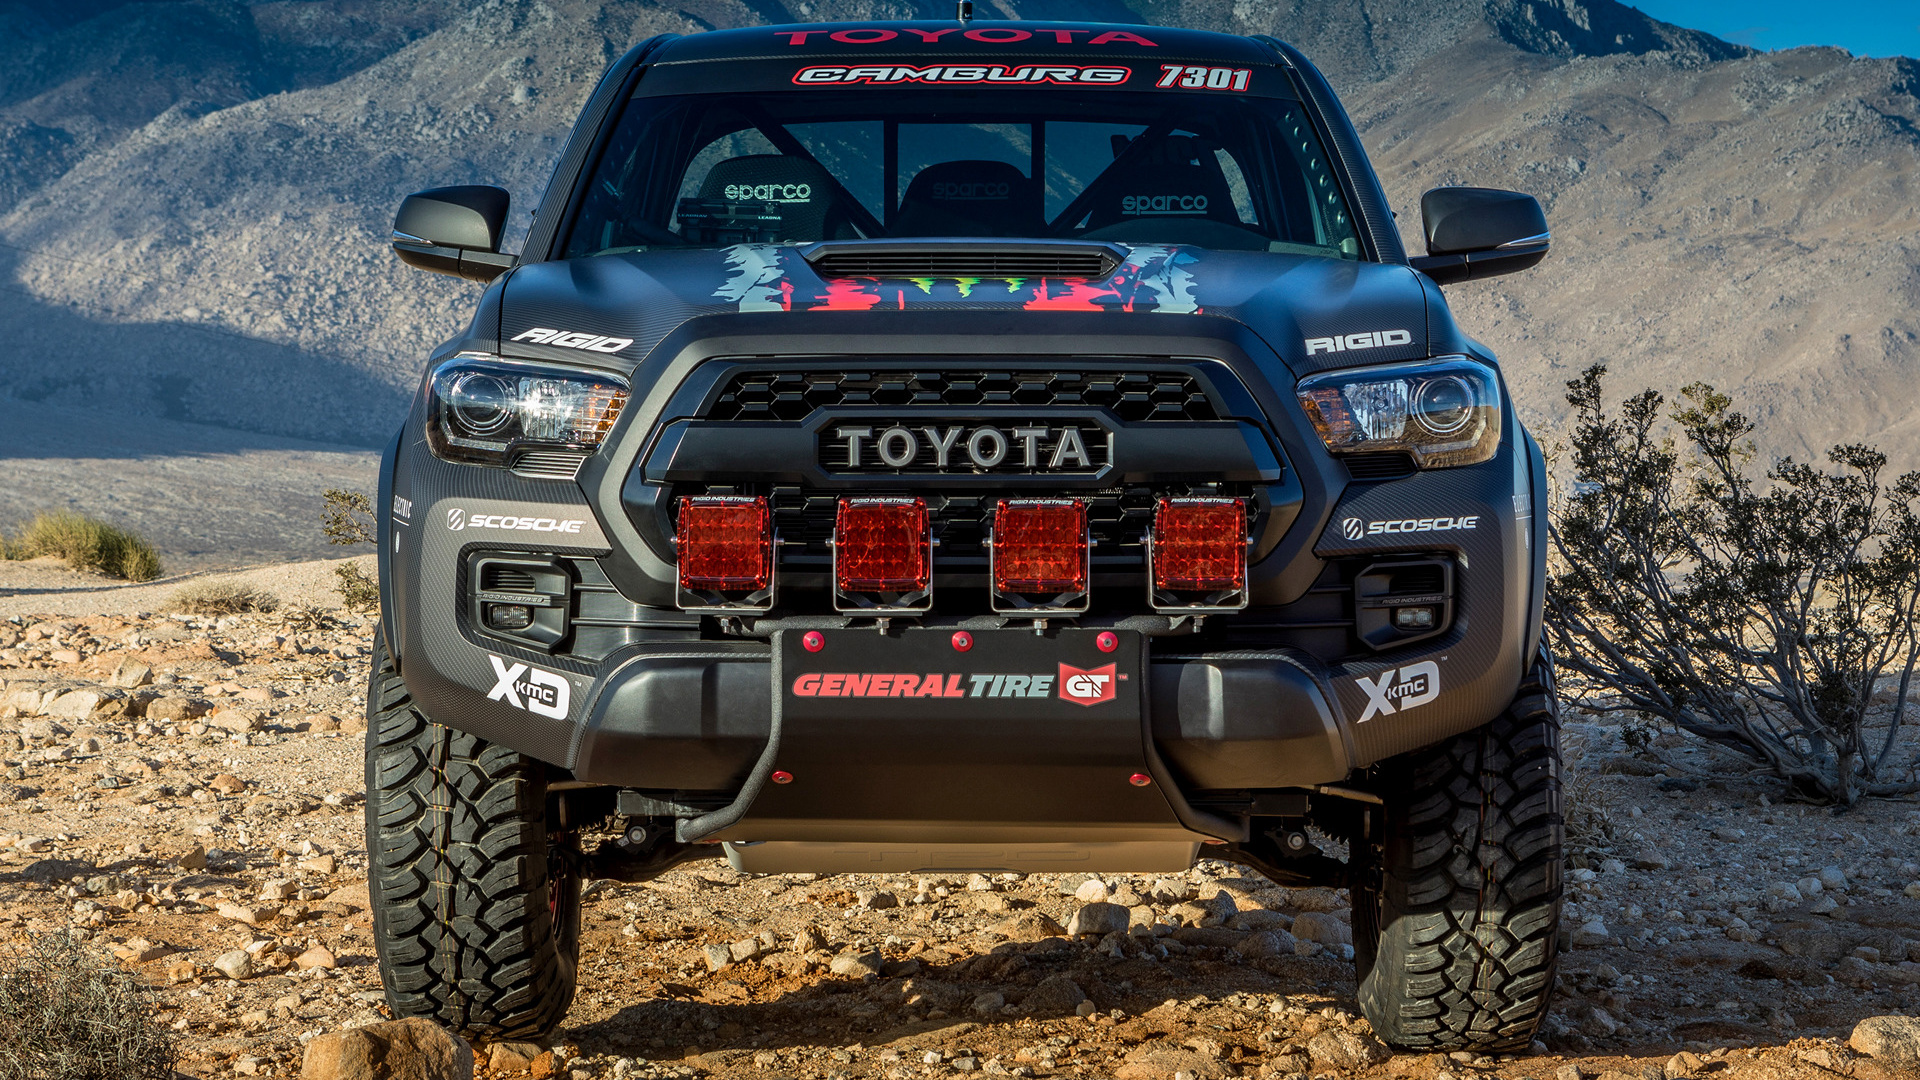 2016 Toyota Tacoma Trd Pro Race Truck Wallpapers And Hd